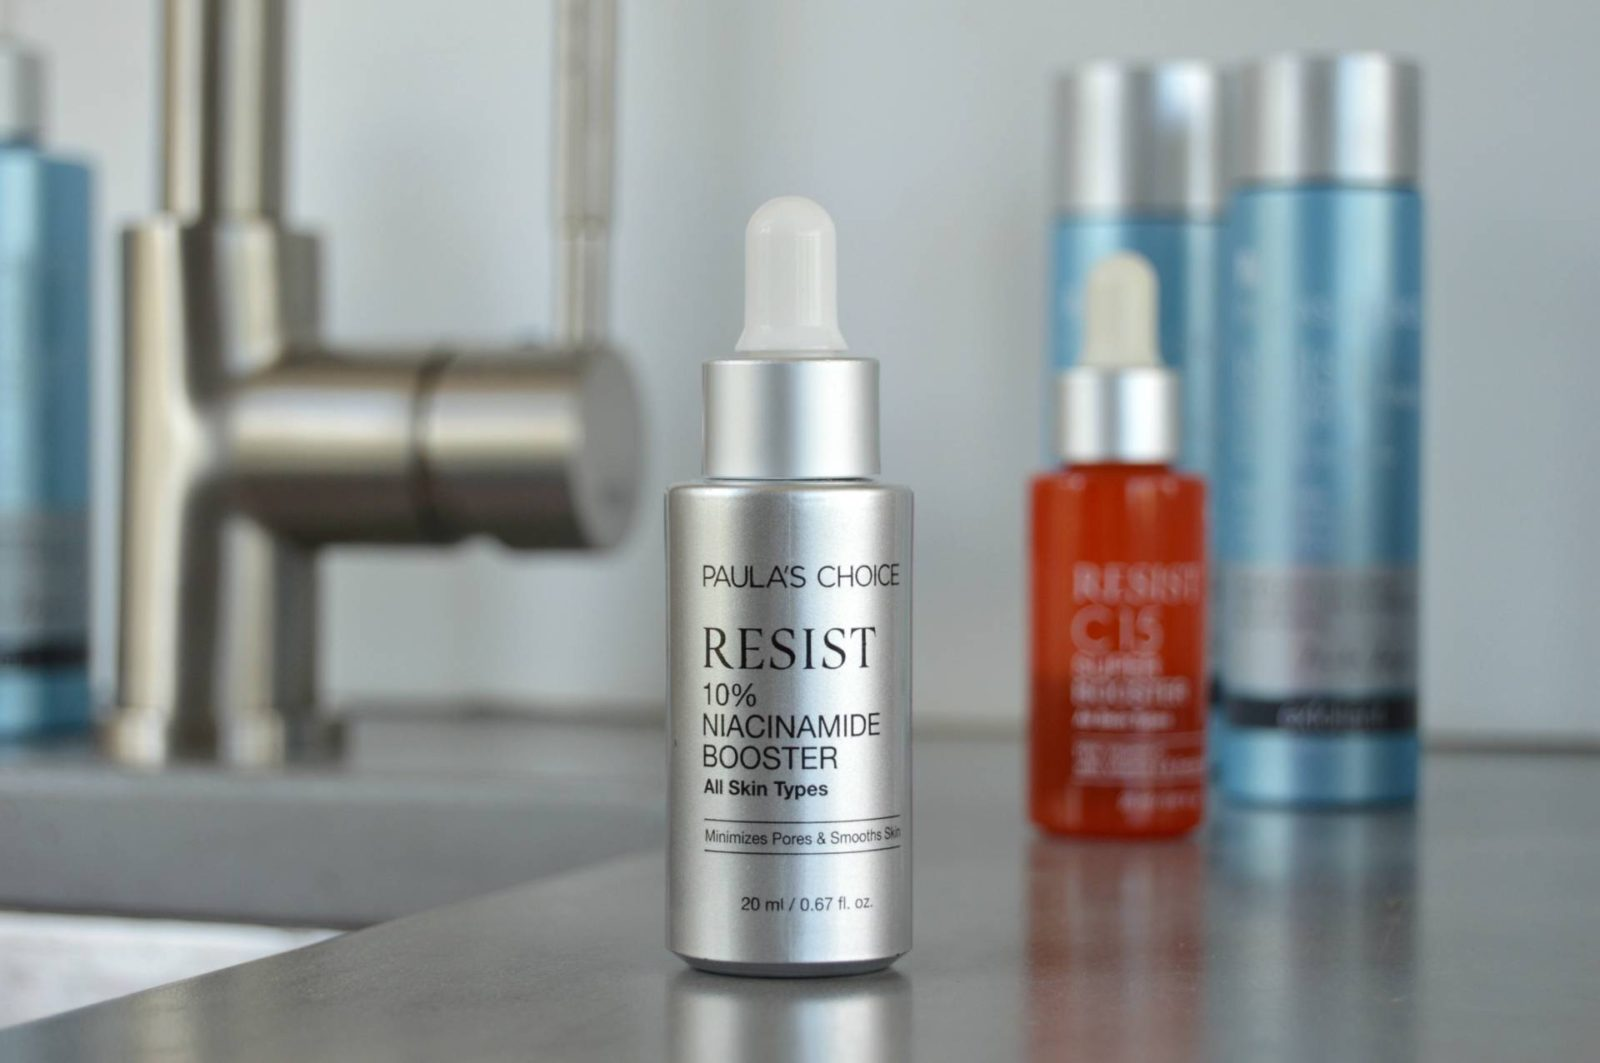 Paula's Choice Resist 10% Niacinamide Booster (Yes, you need it.)